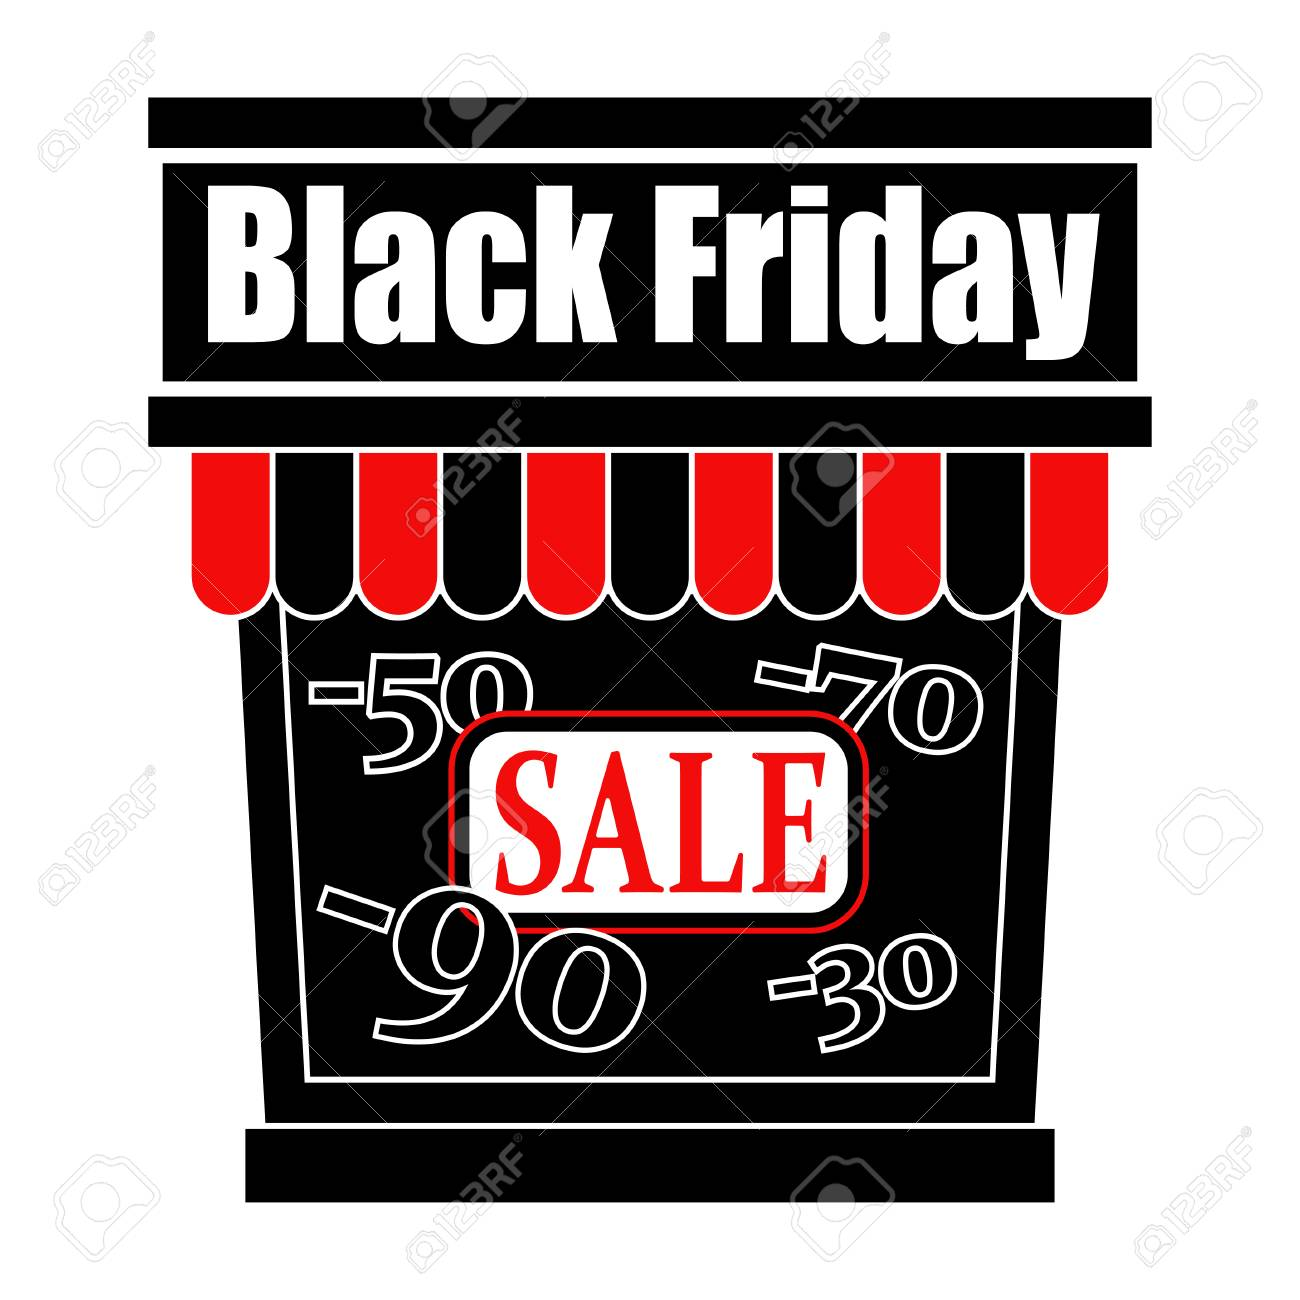 Black Friday Sale Day Logo Store Icon With A Sale Showcase Royalty Free Cliparts Vectors And Stock Illustration Image 111210639